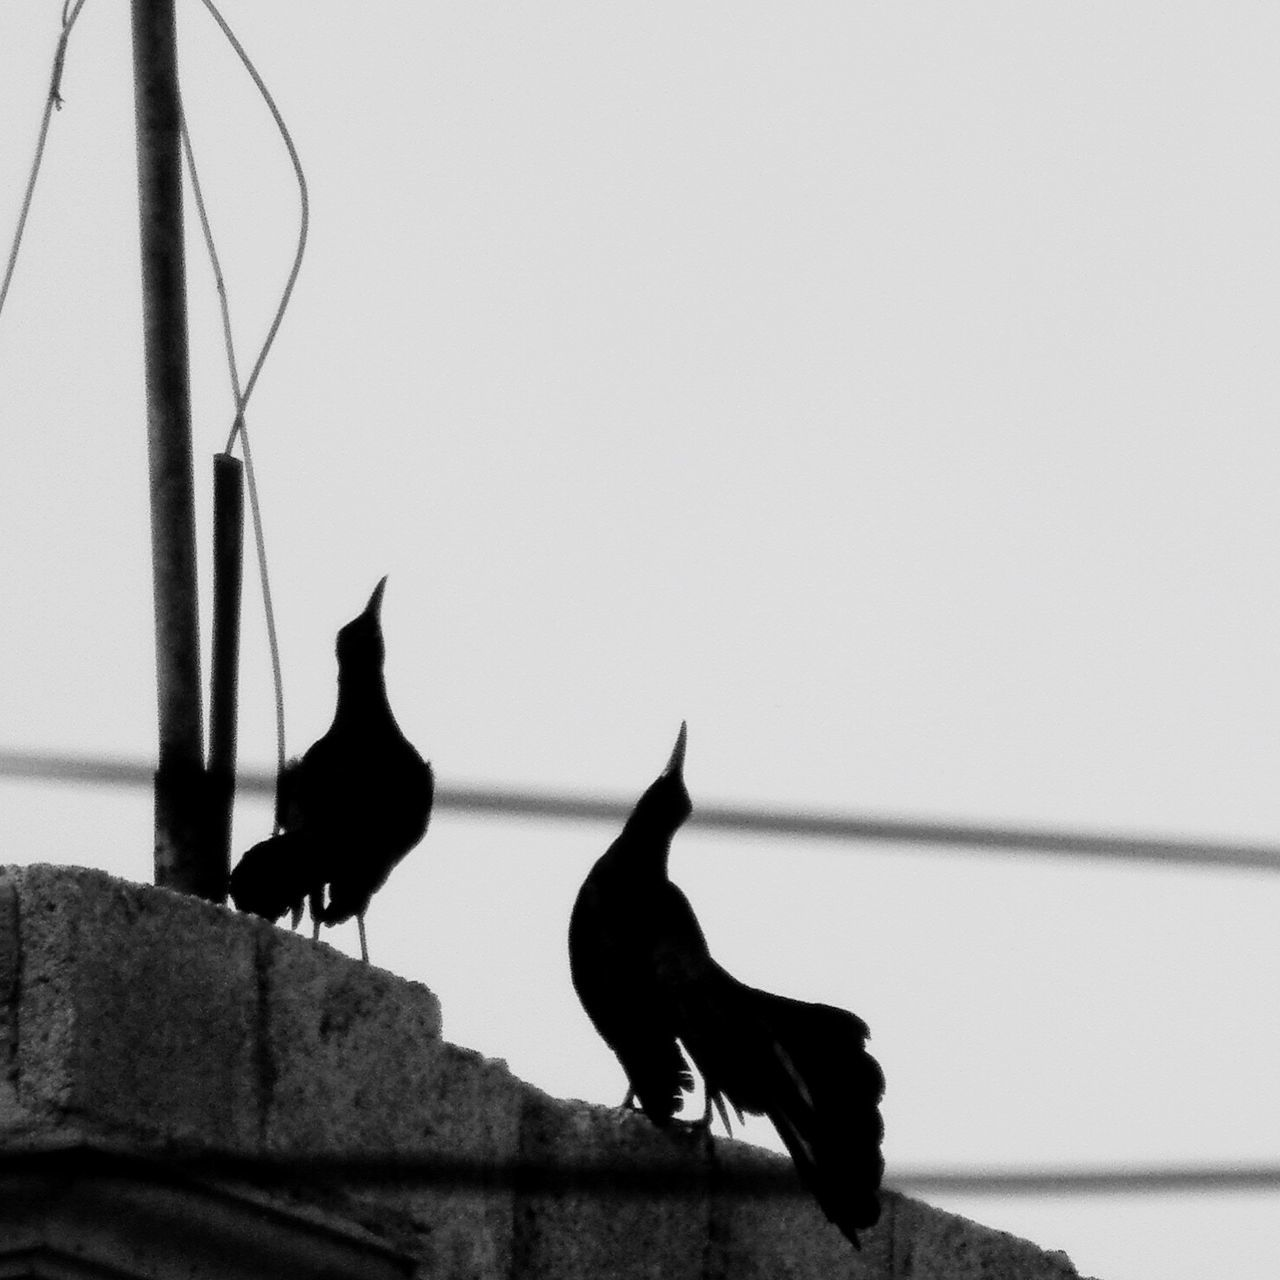 Adapted To The City Escucha! Animal Themes Bird EyeEm Best Shots - Black + White Blackandwhite